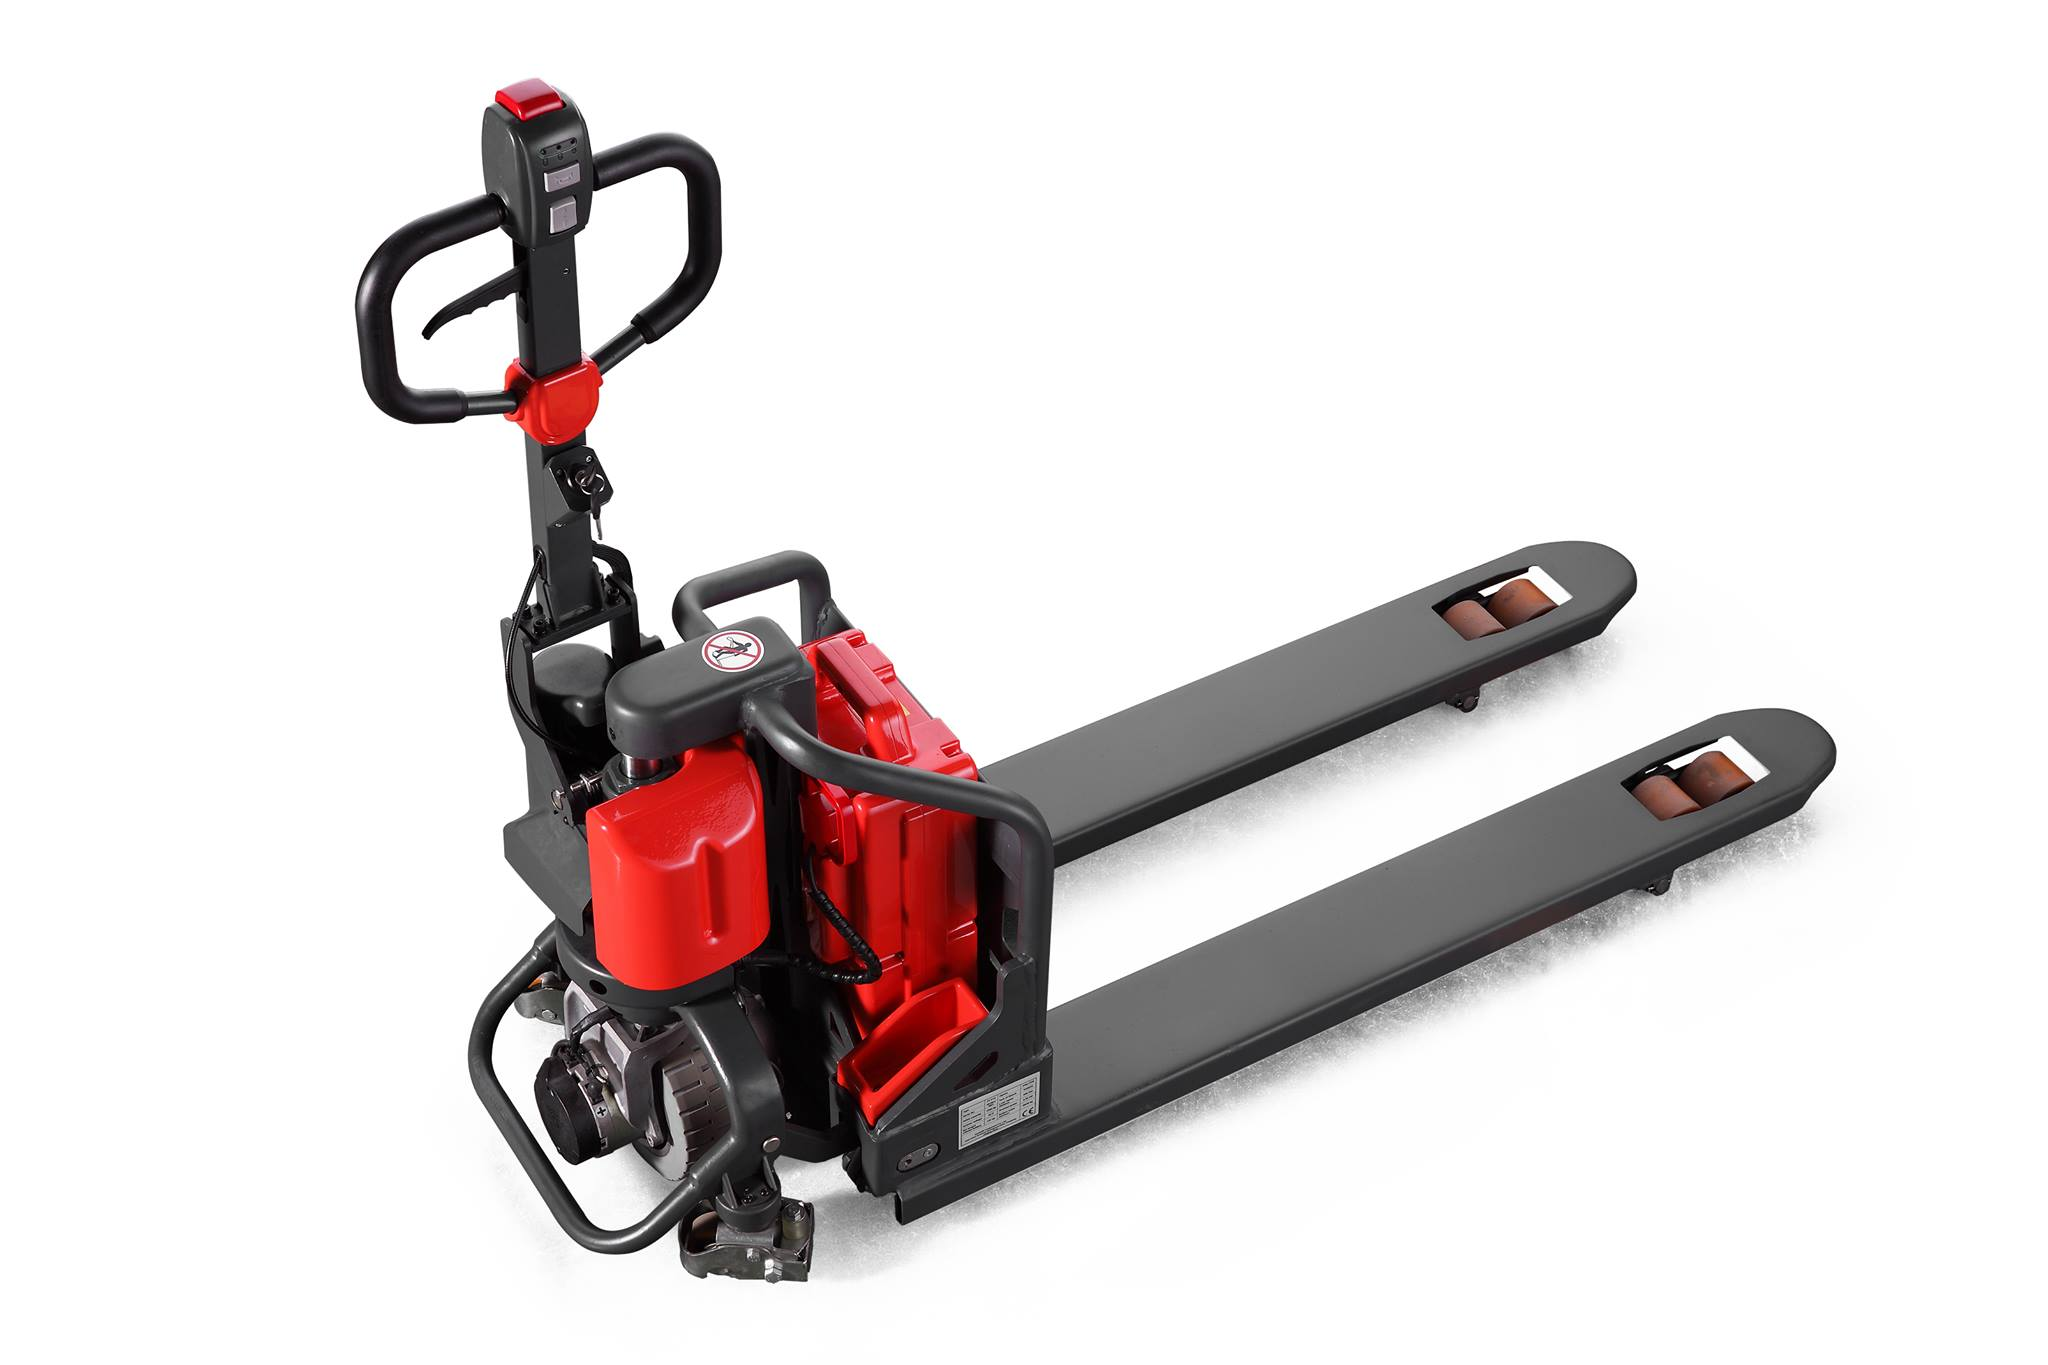 Full Electric Compact Pallet Jack